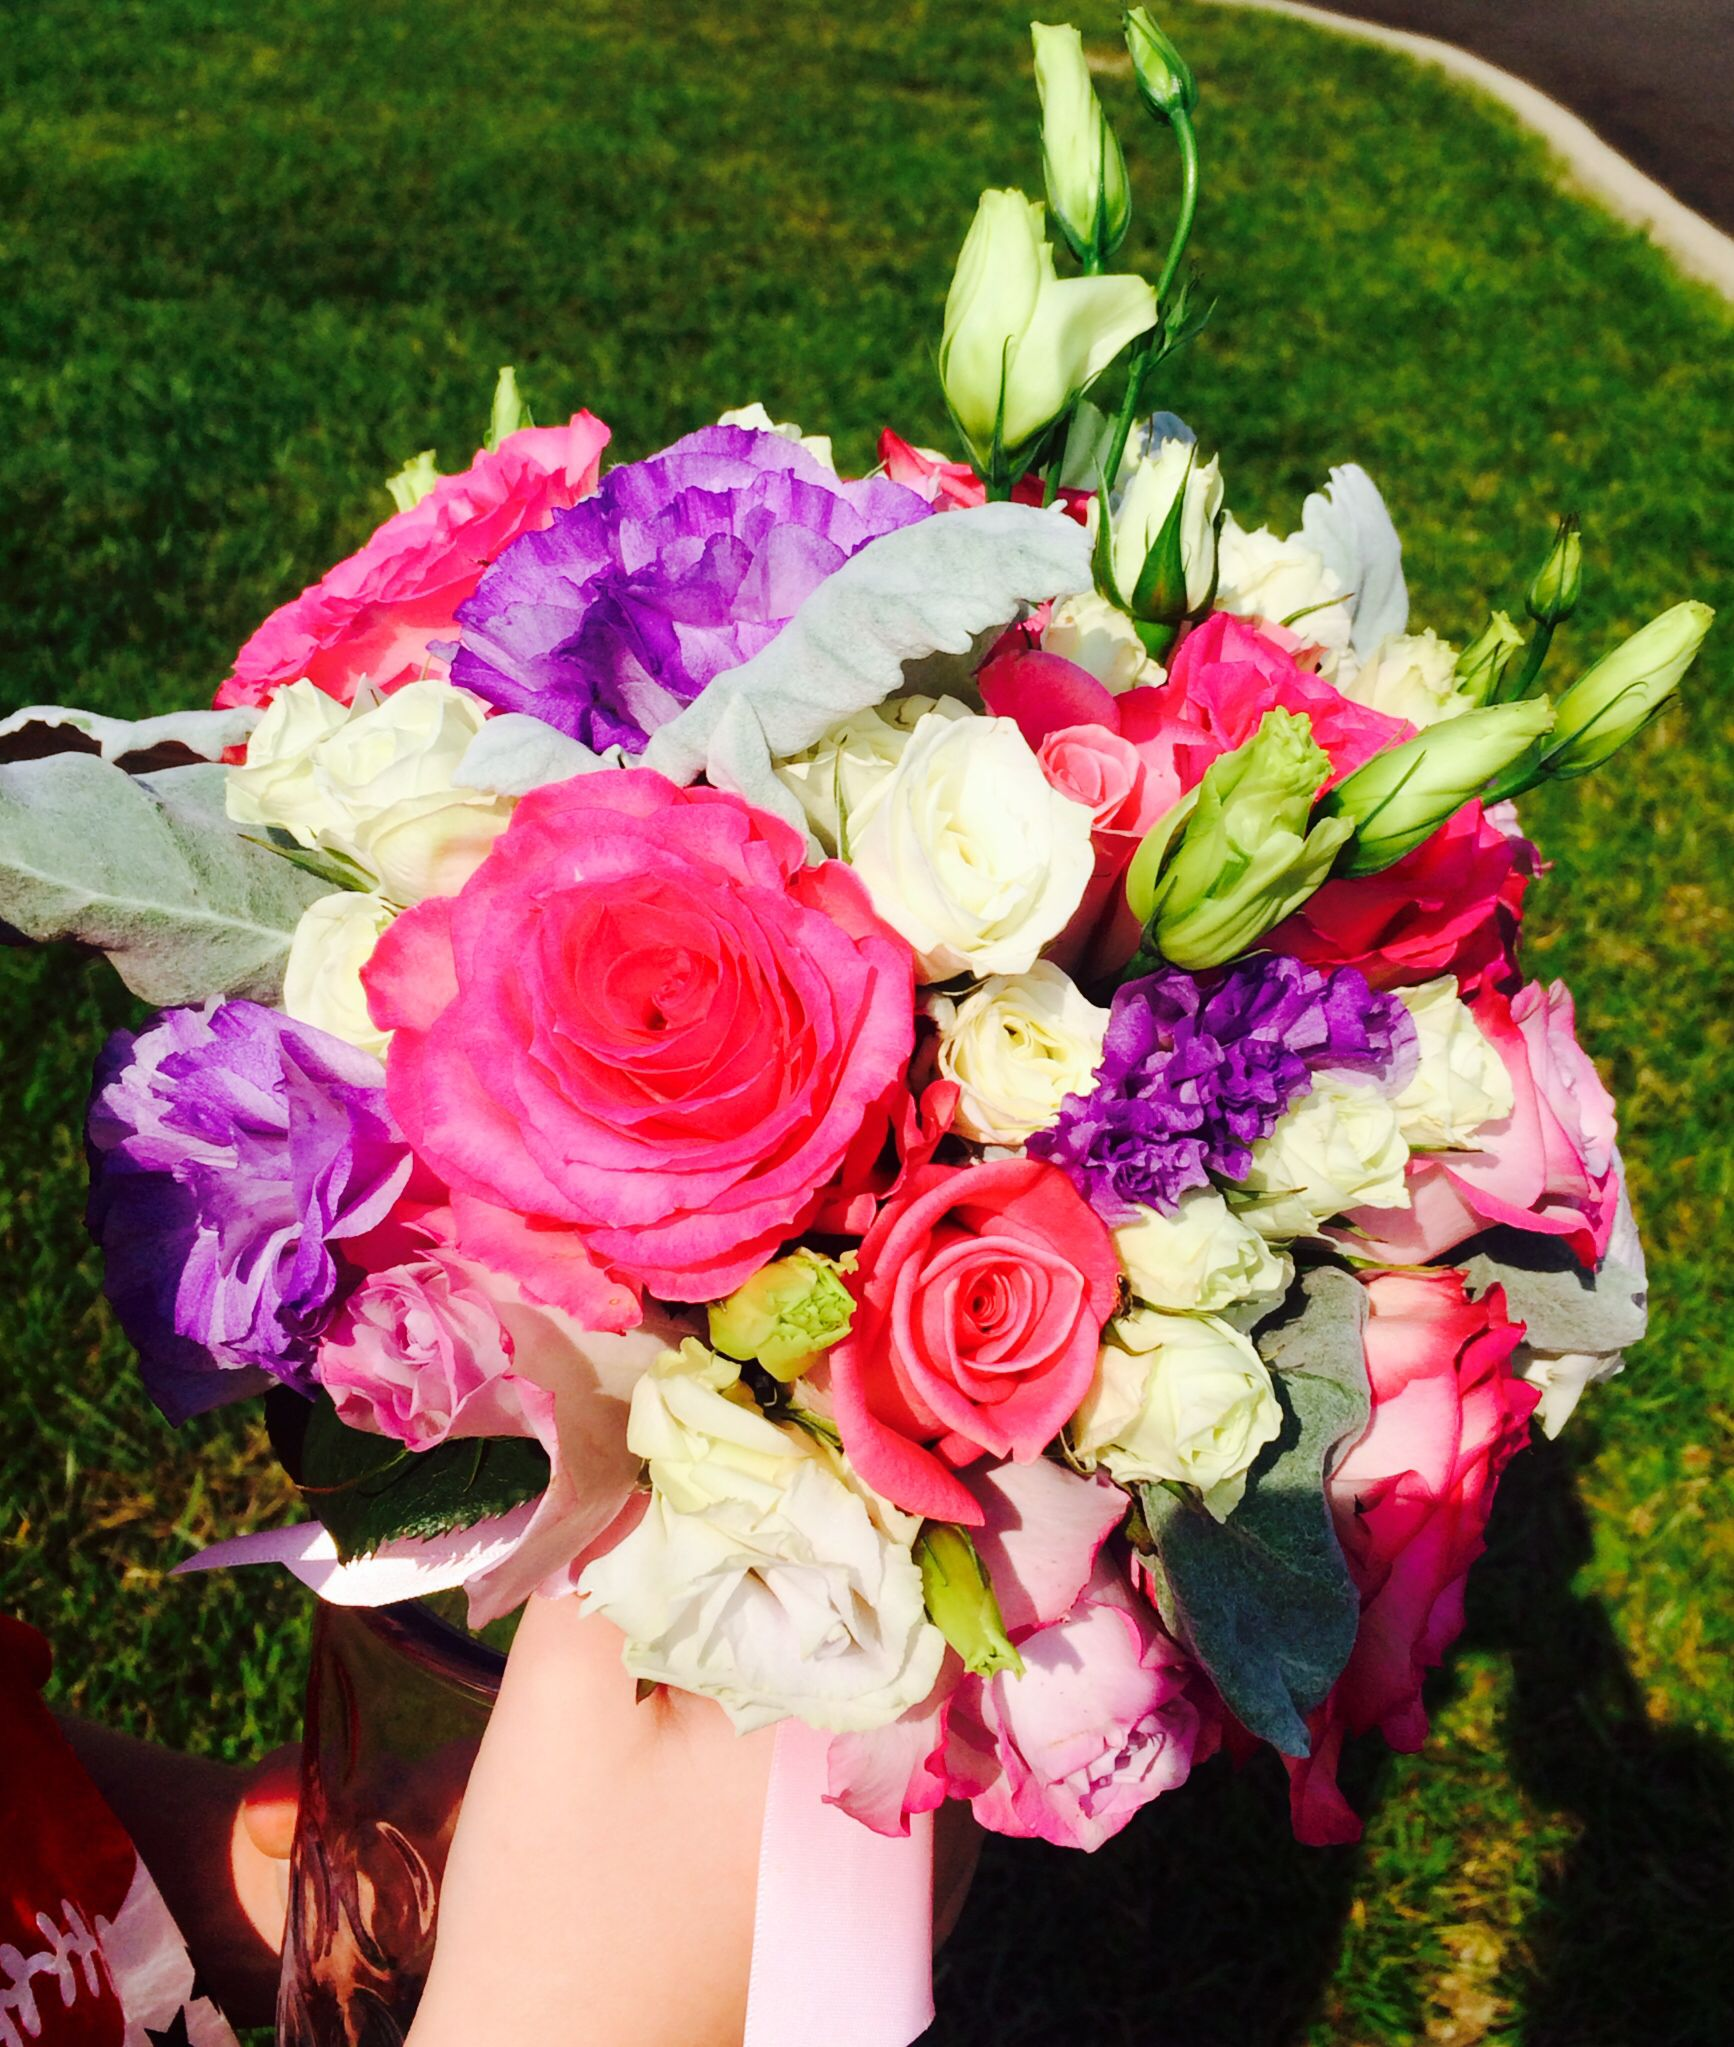 Wedding Flowers Website: Bridal Bouquet: Pink Roses, Dusty Miller, Etc #wedding